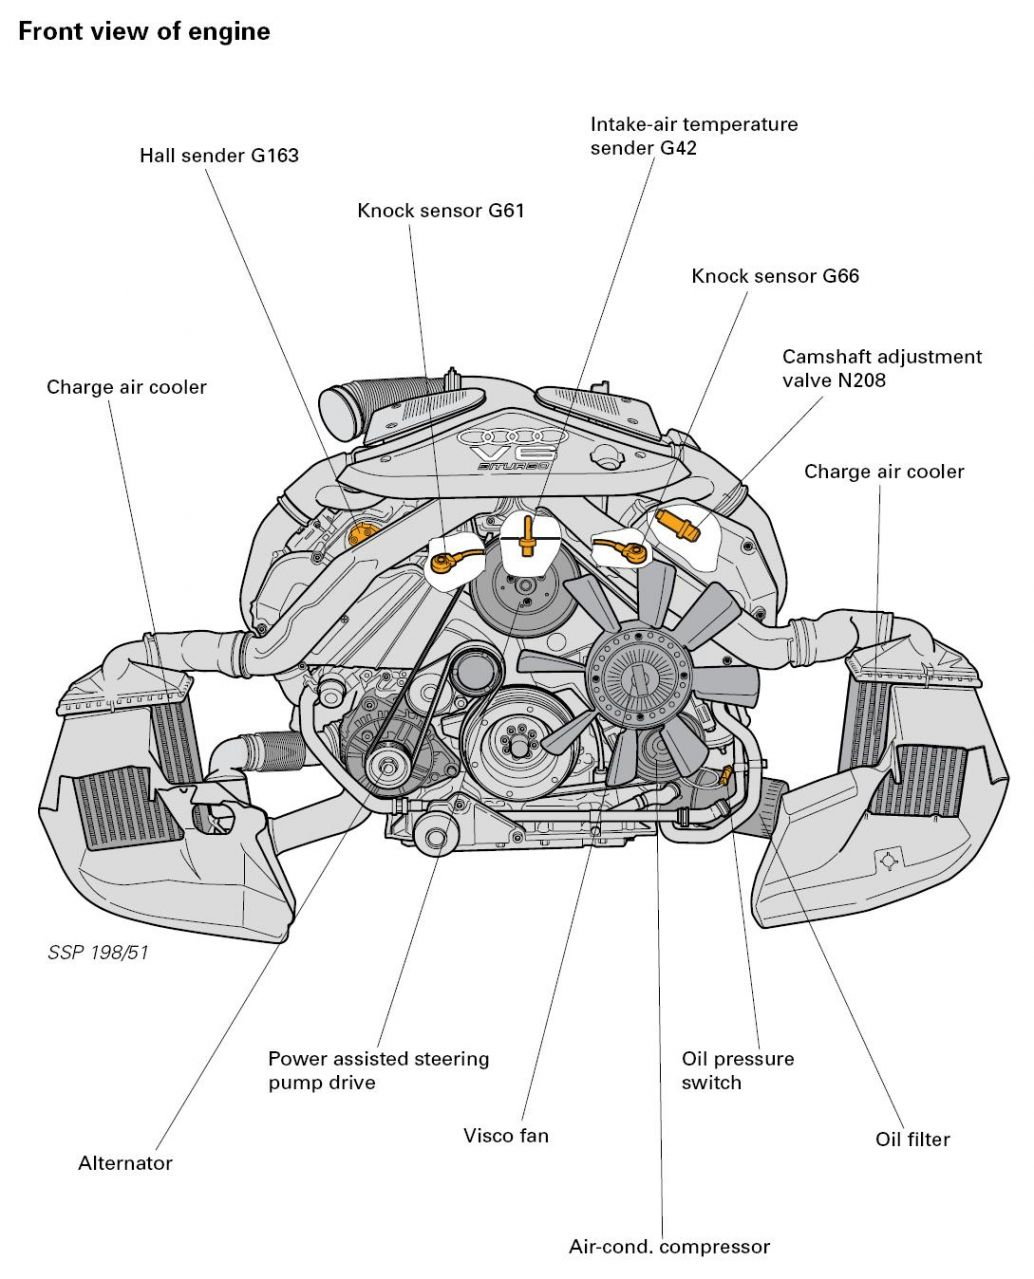 audi s4 engine diagram schematics wiring diagrams u2022 rh hokispokisrecords com 2000 audi s4 tail light wiring diagram 2000 audi s4 tail light wiring diagram